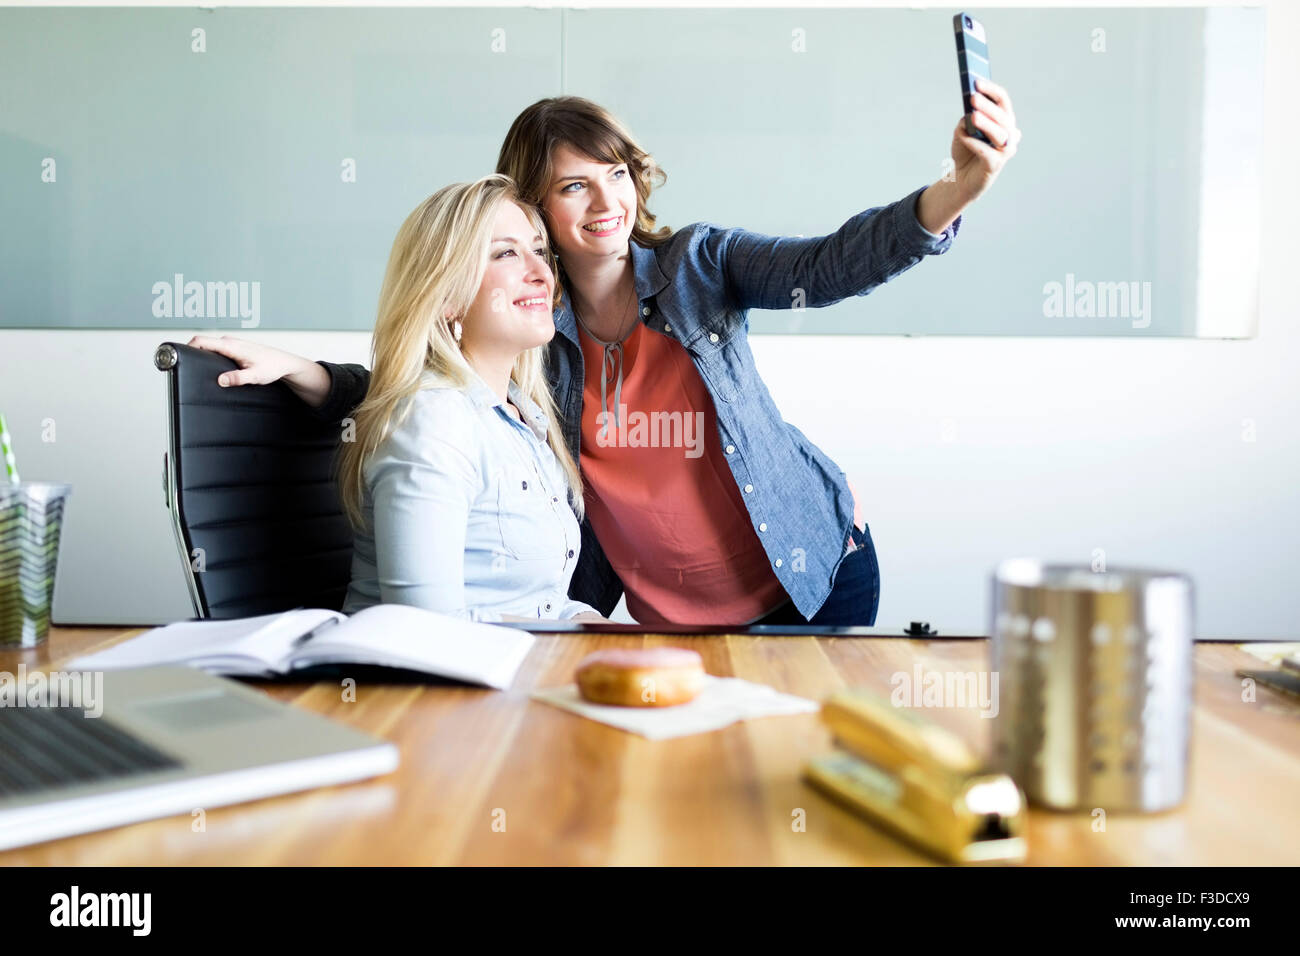 Office workers taking selfie - Stock Image